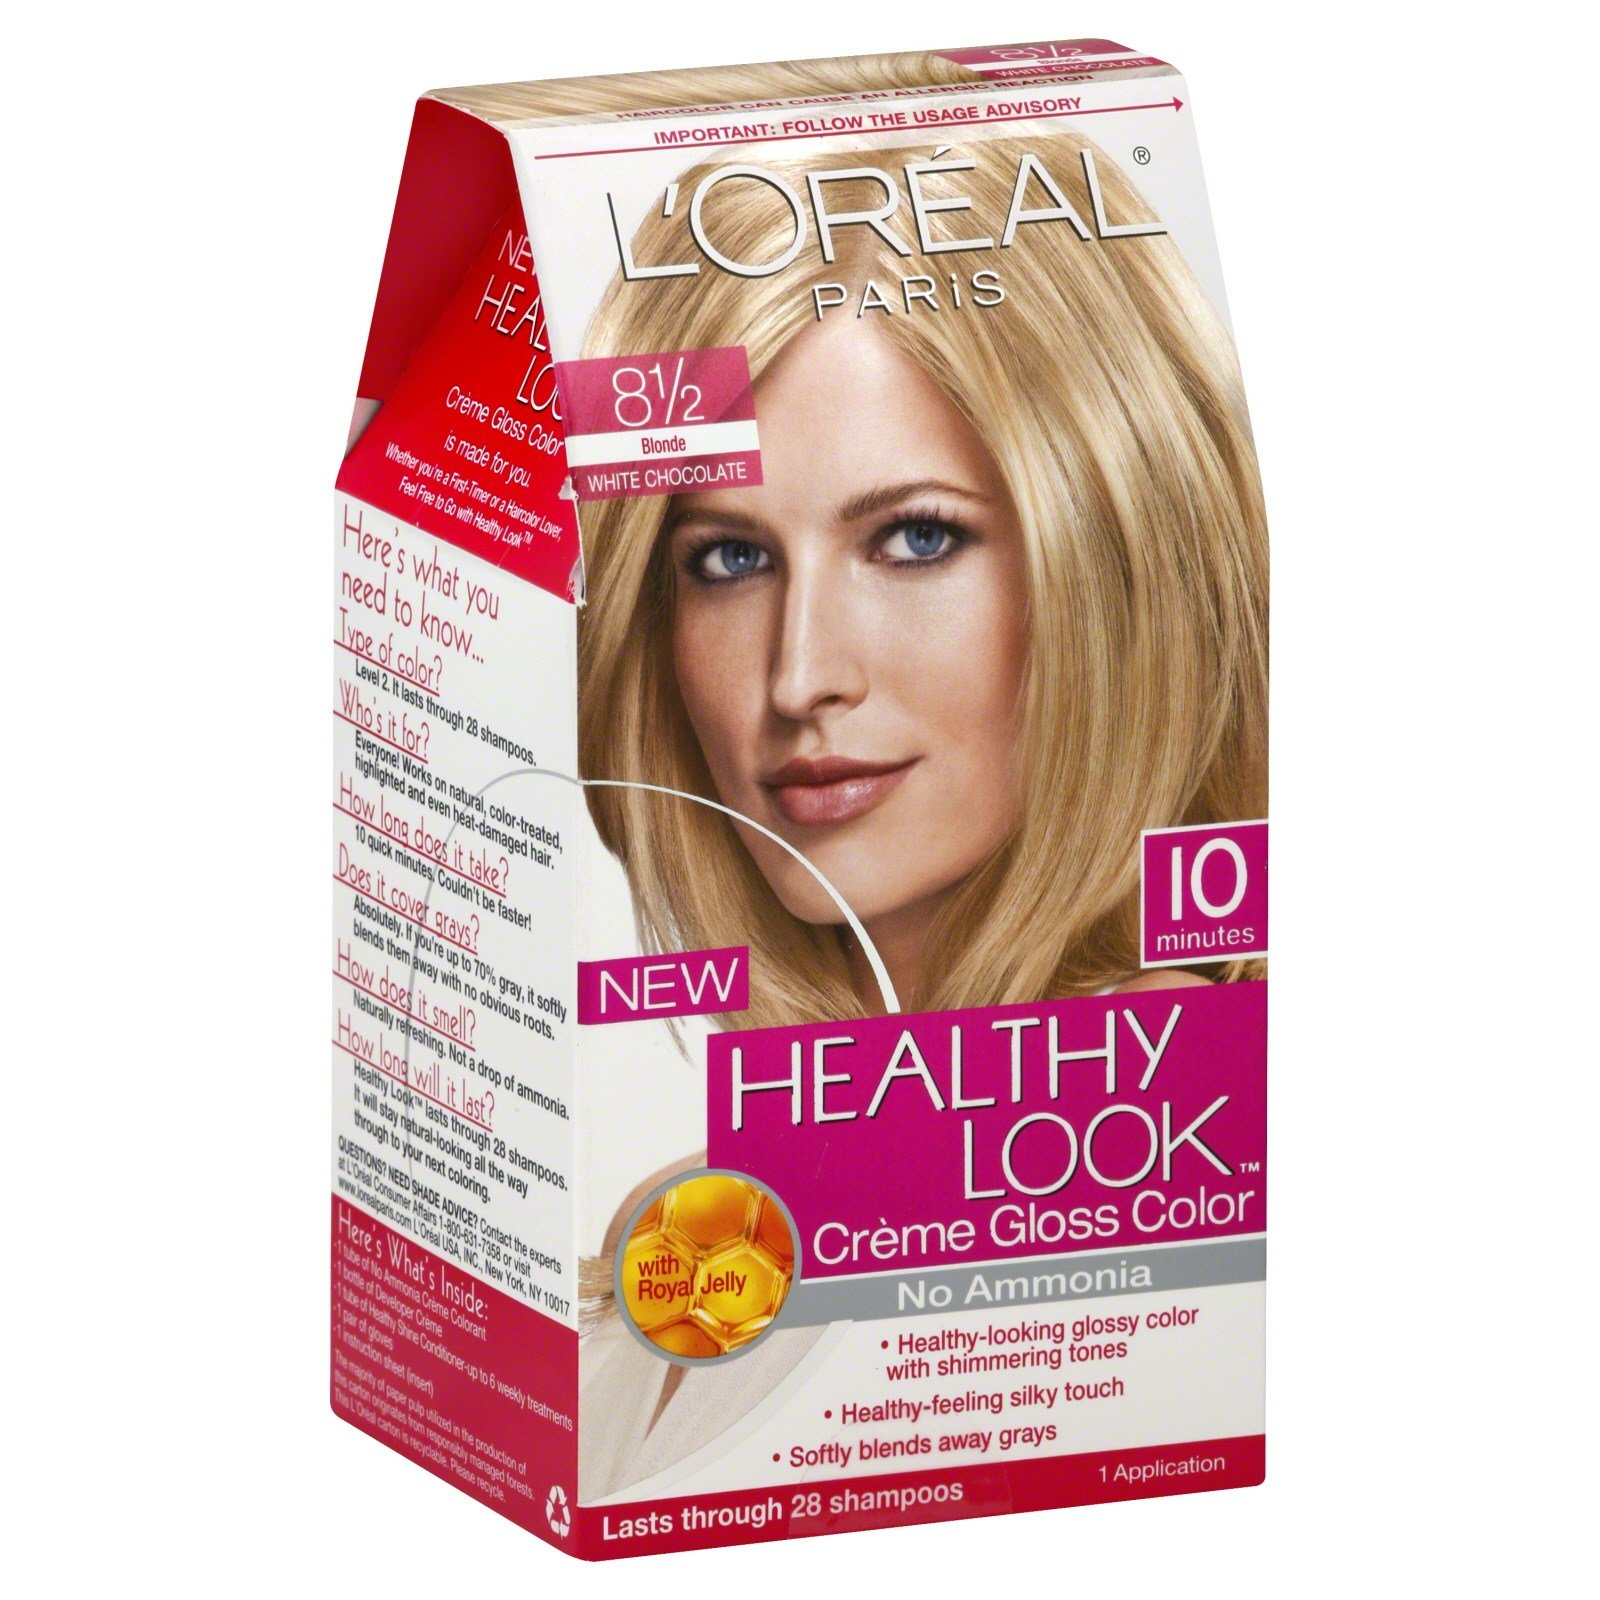 The Best L Oreal Healthy Look Creme Gloss Color Blonde 8 1 2 1 Pictures